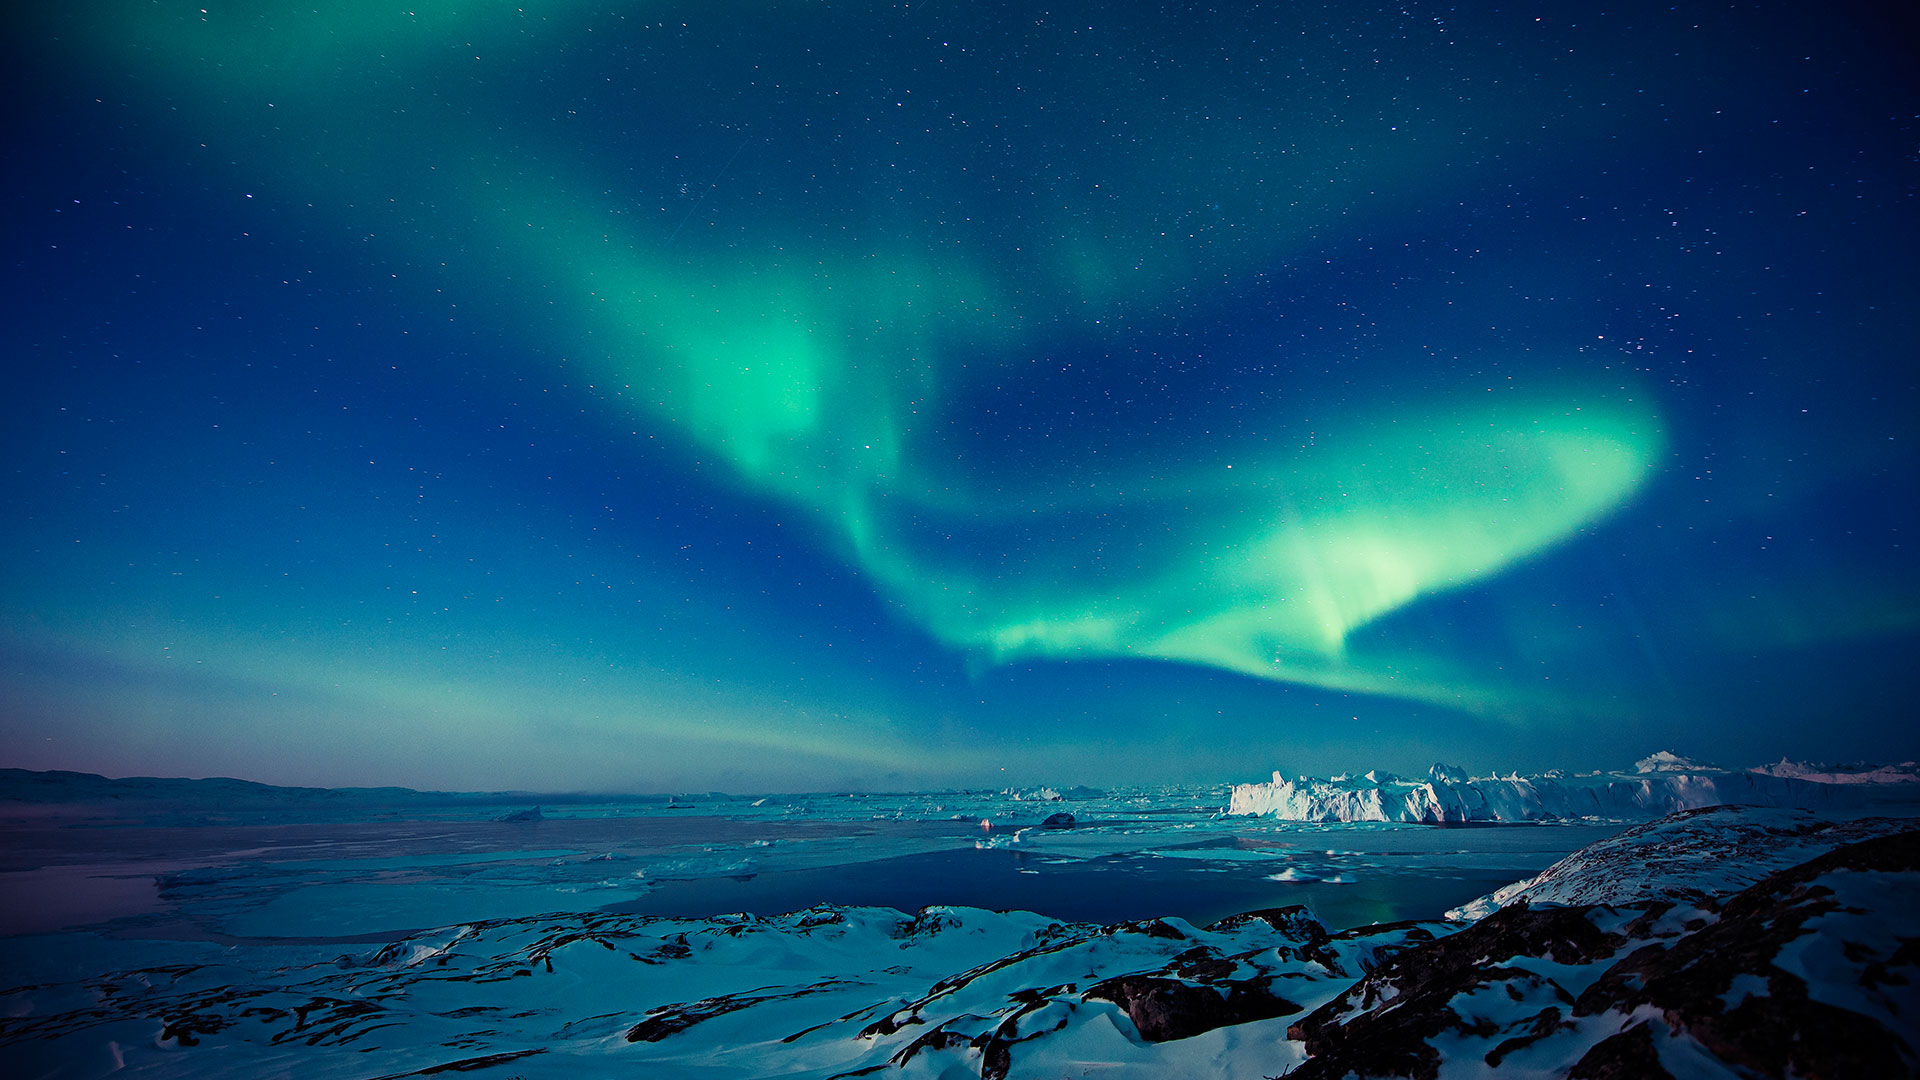 Northern lights at Ilulissat in North Greenland